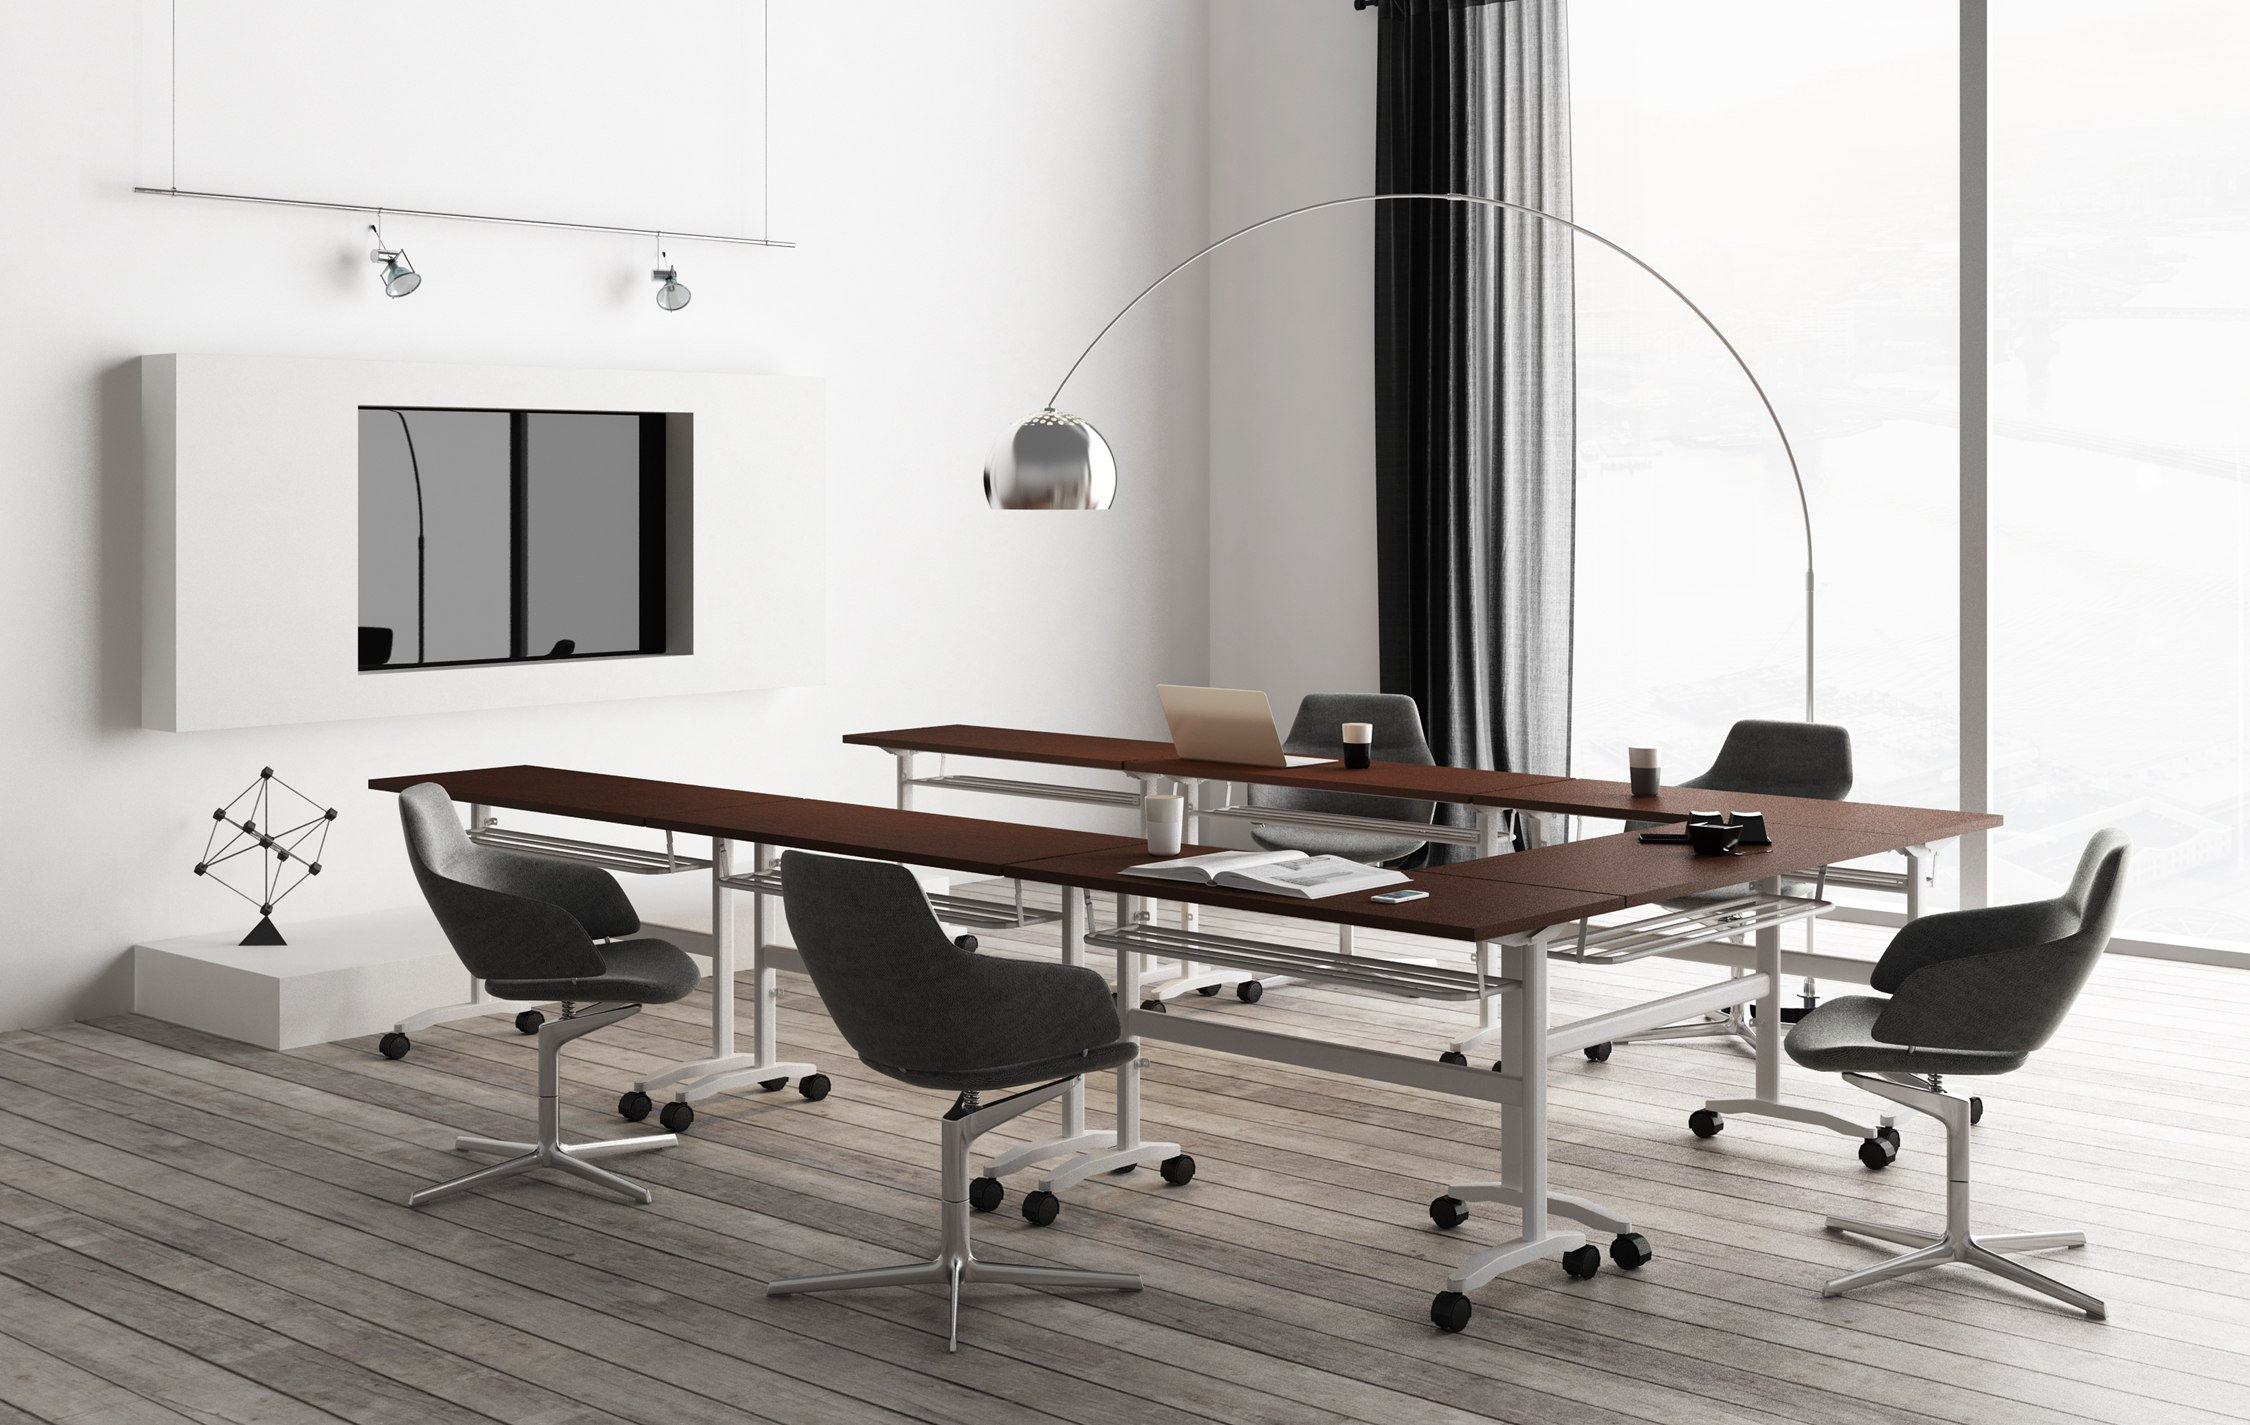 "title='<div align=""left""> 	<span style=""font-size:14px;"">Modern, flexible and rugged! The industrial-chic design of the steel table frame not only catches the eye, but the recessed center legs provide uninhibited user legspace, promoting collaboration, creative planning and teamwork.</span>  </div>'"